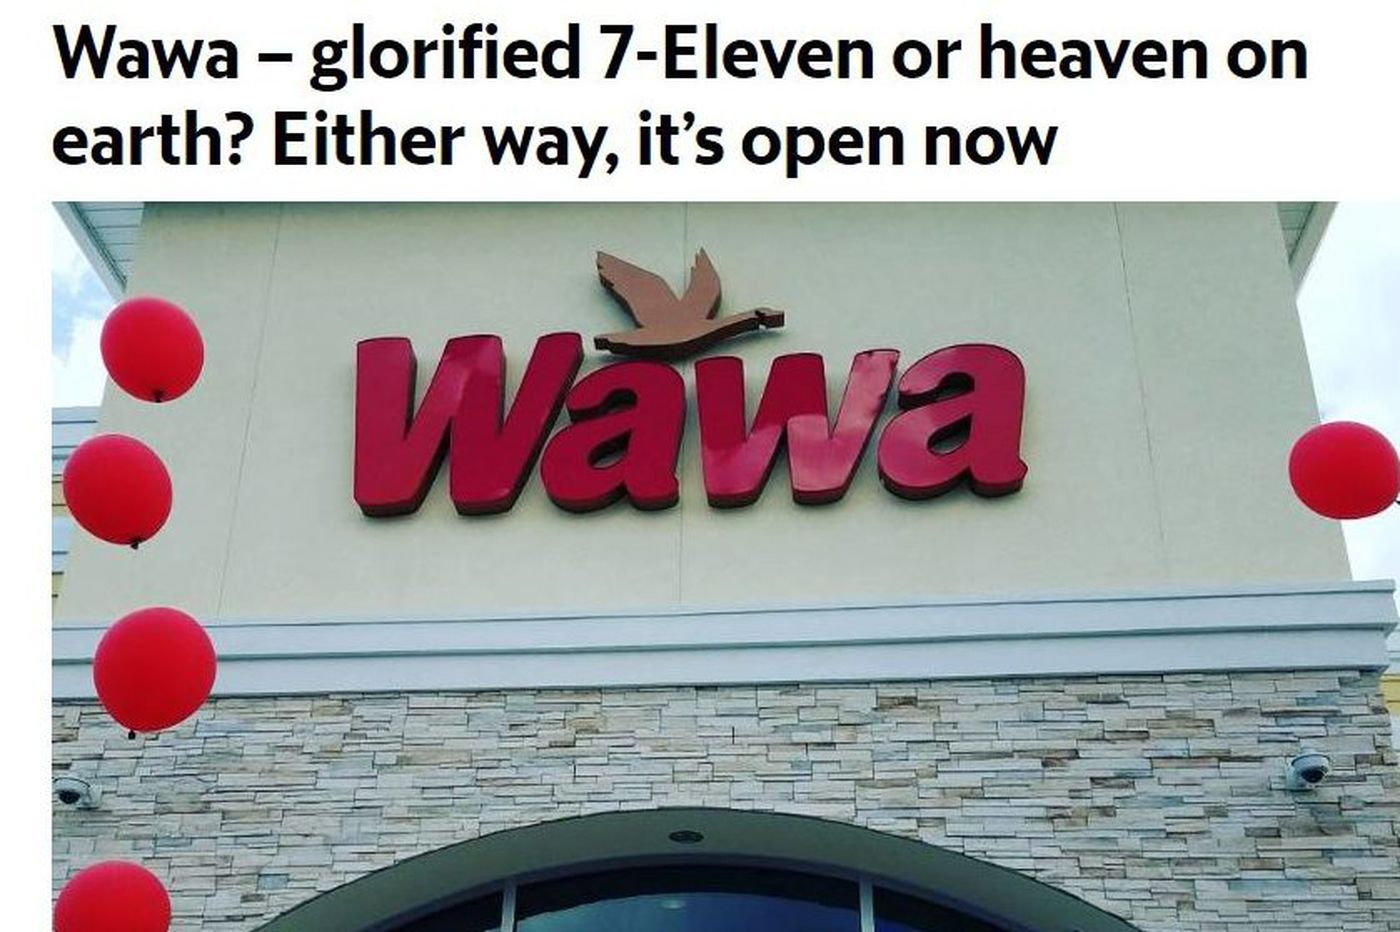 As Wawa expands, some Floridians - and one Philly woman - are dubious